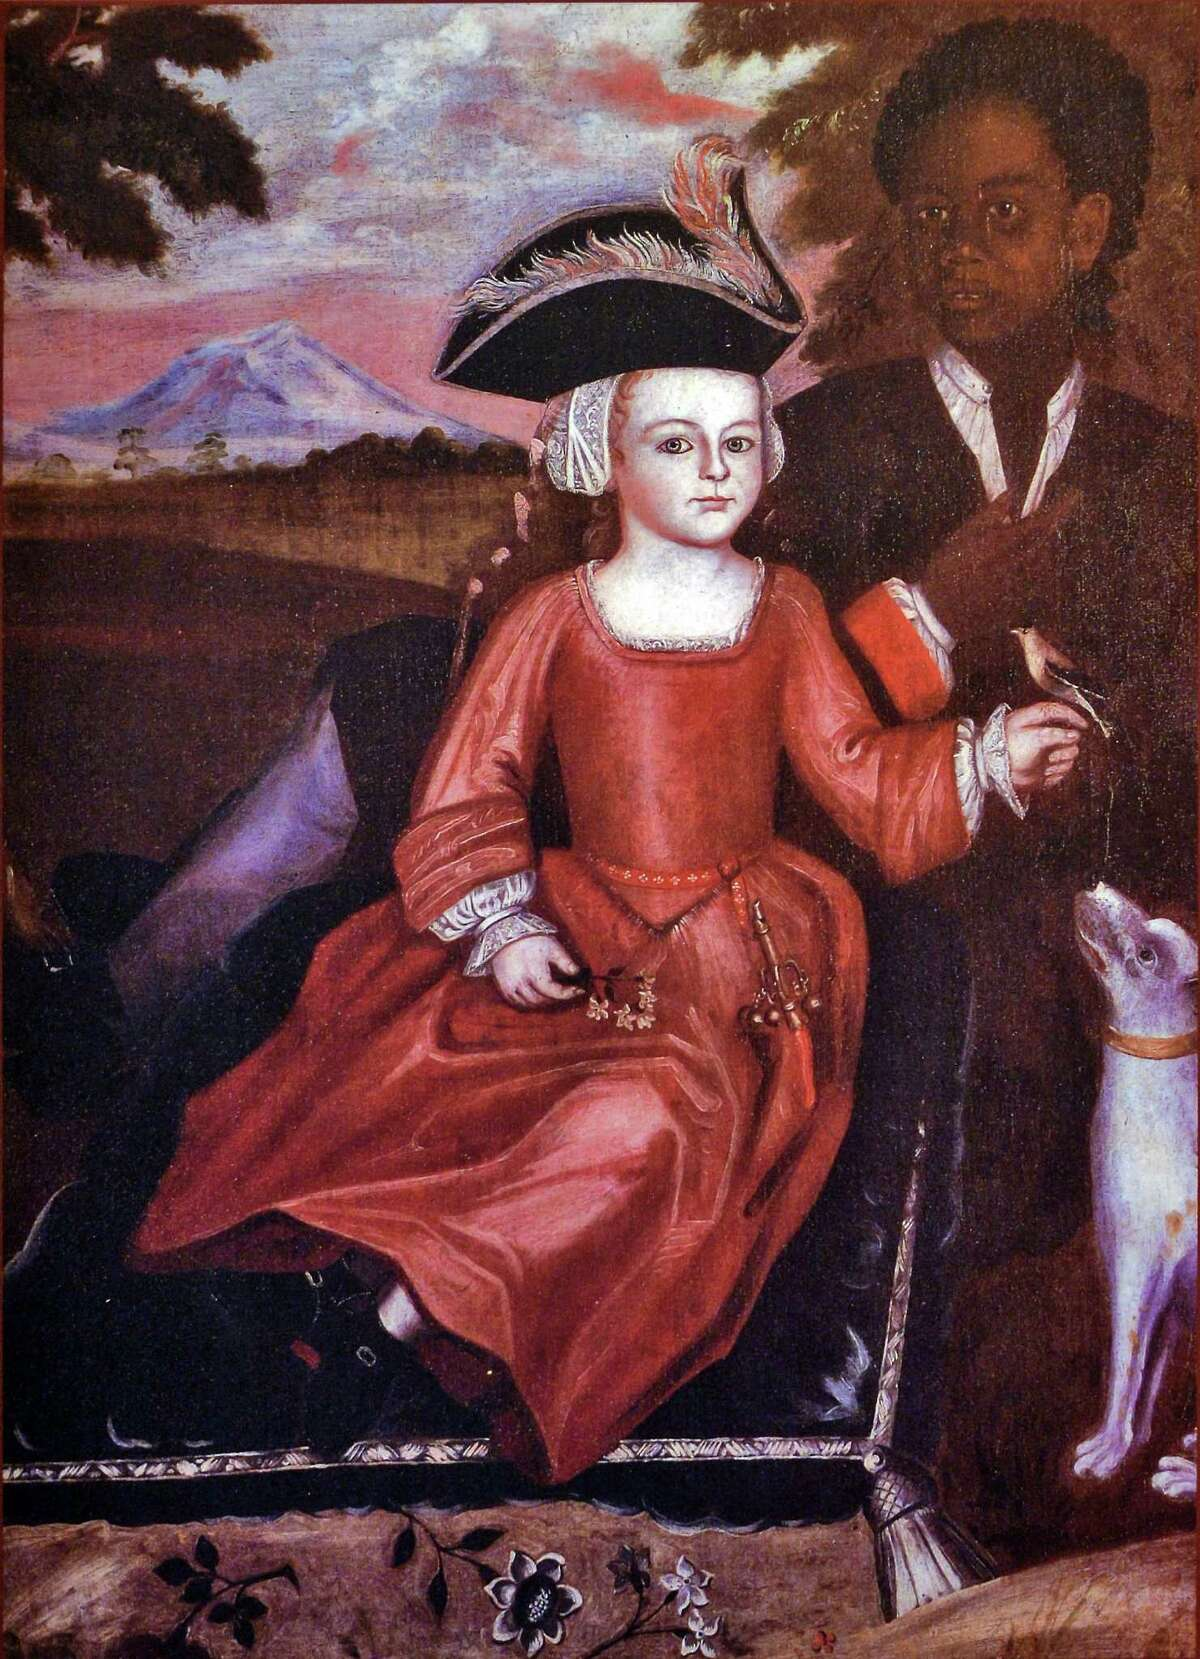 Painting of a boy of the Van Rensselaer family circa 1730, in the new exhibit